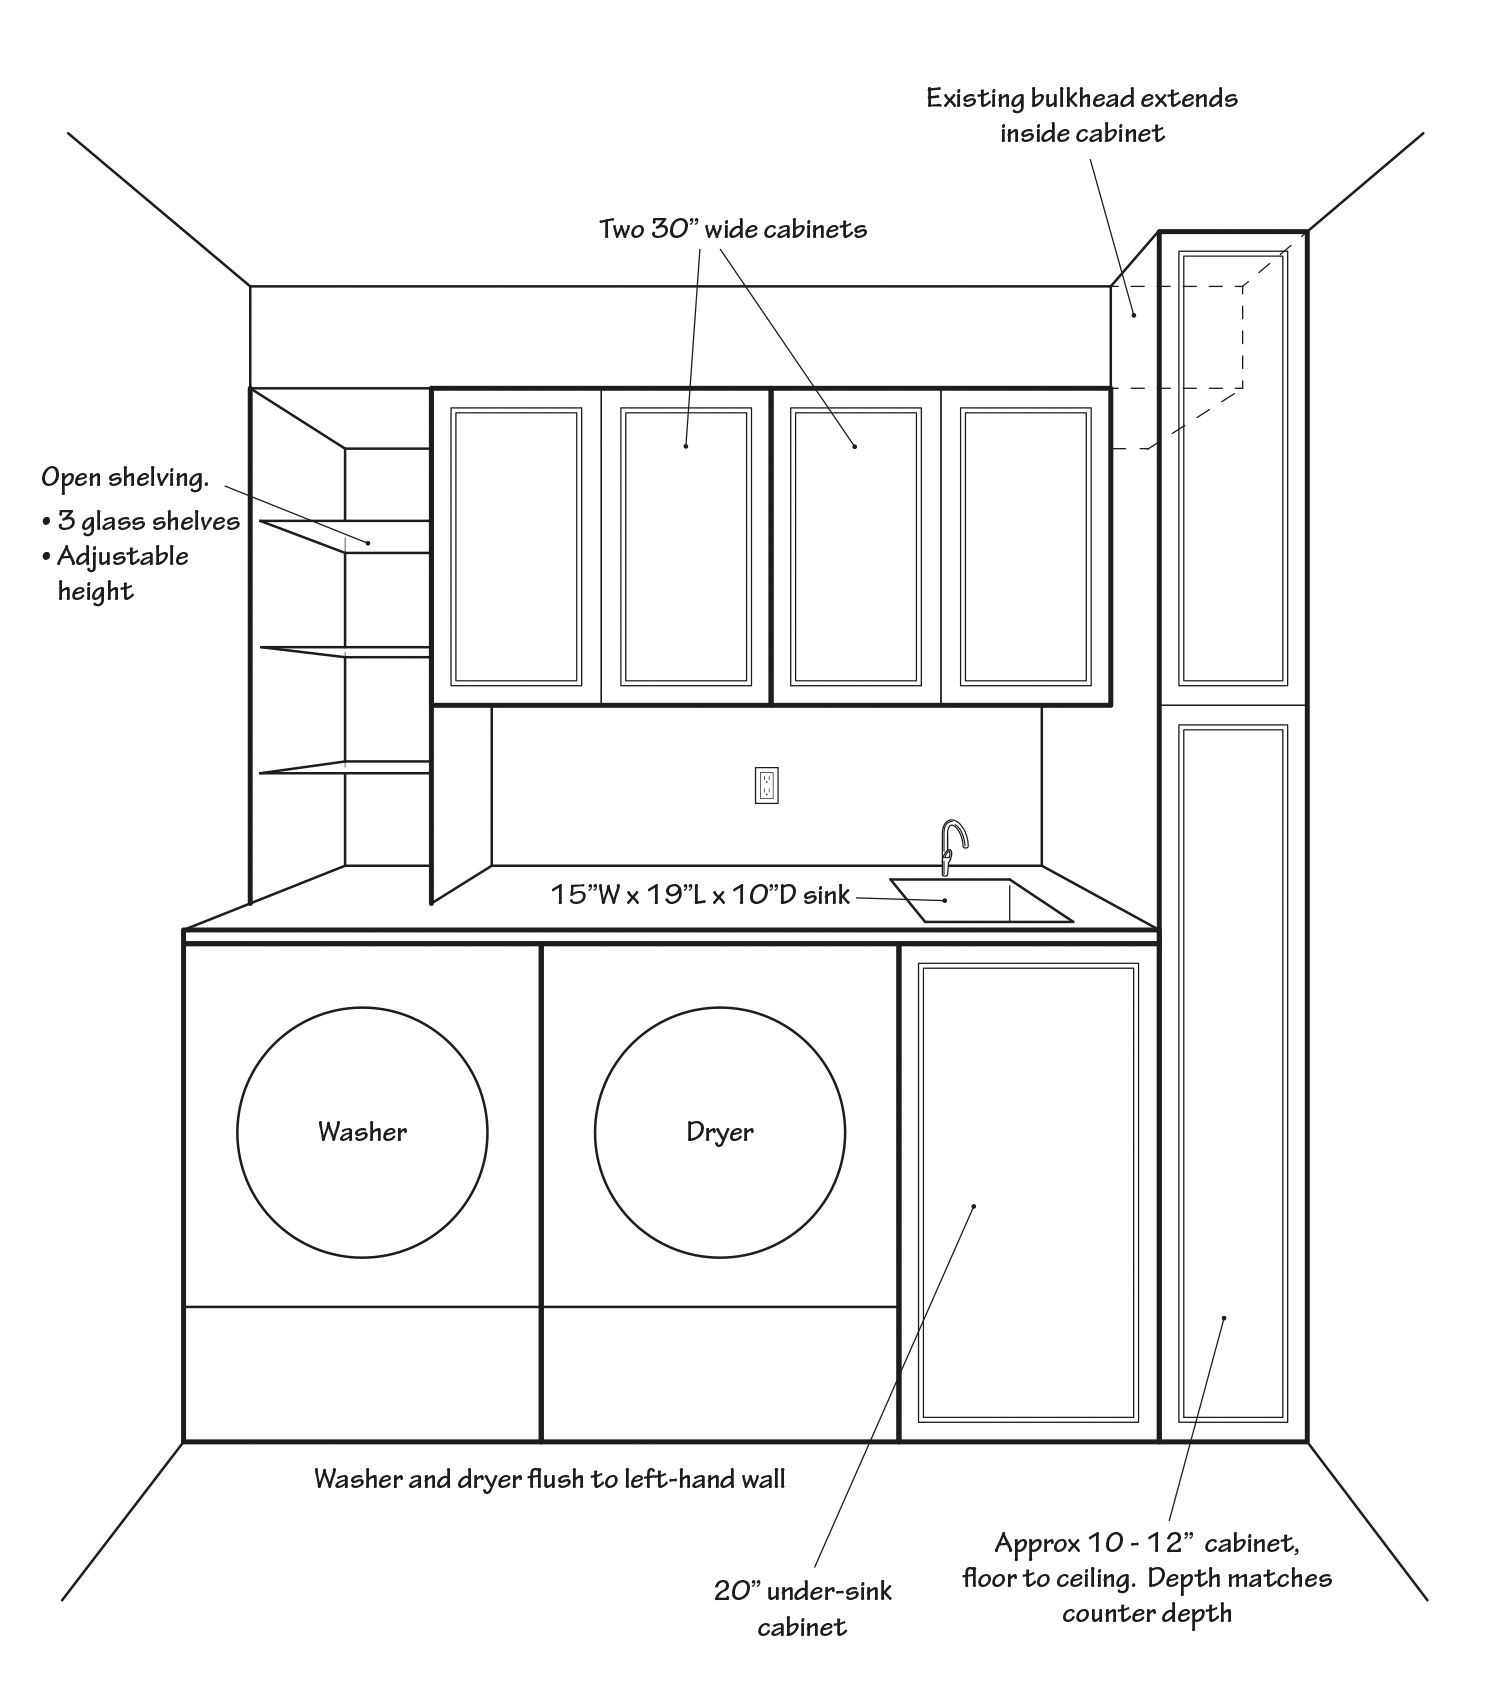 Laundry room design plans google search laundry Laundry room blueprints